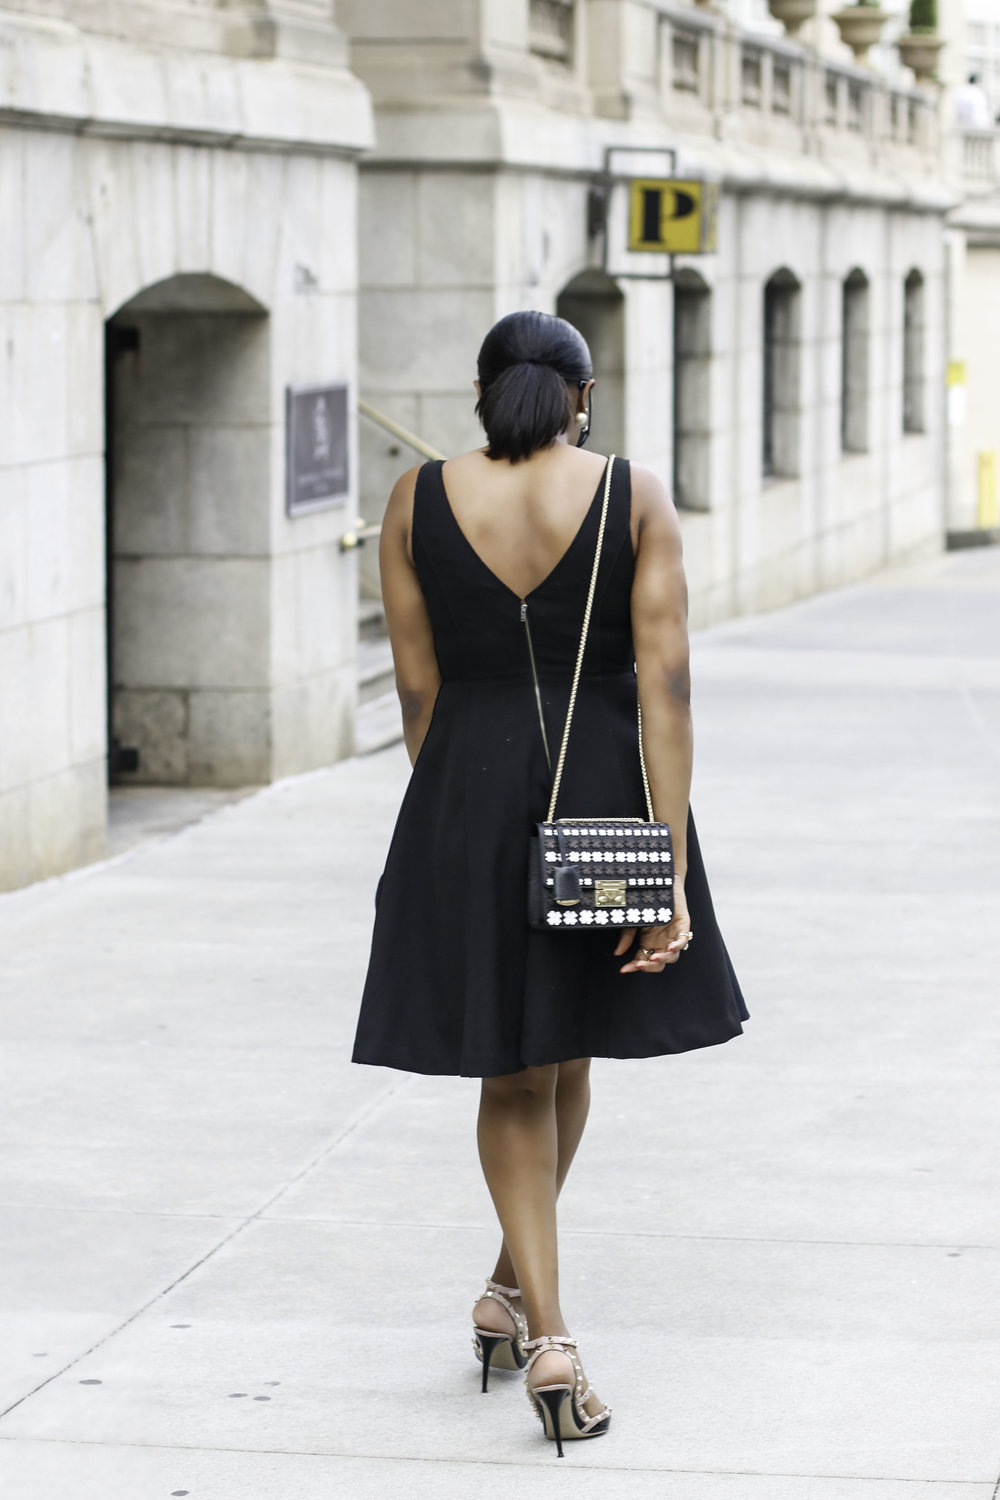 THE BACK VIEW OF THE PERFECT DRESS.jpg